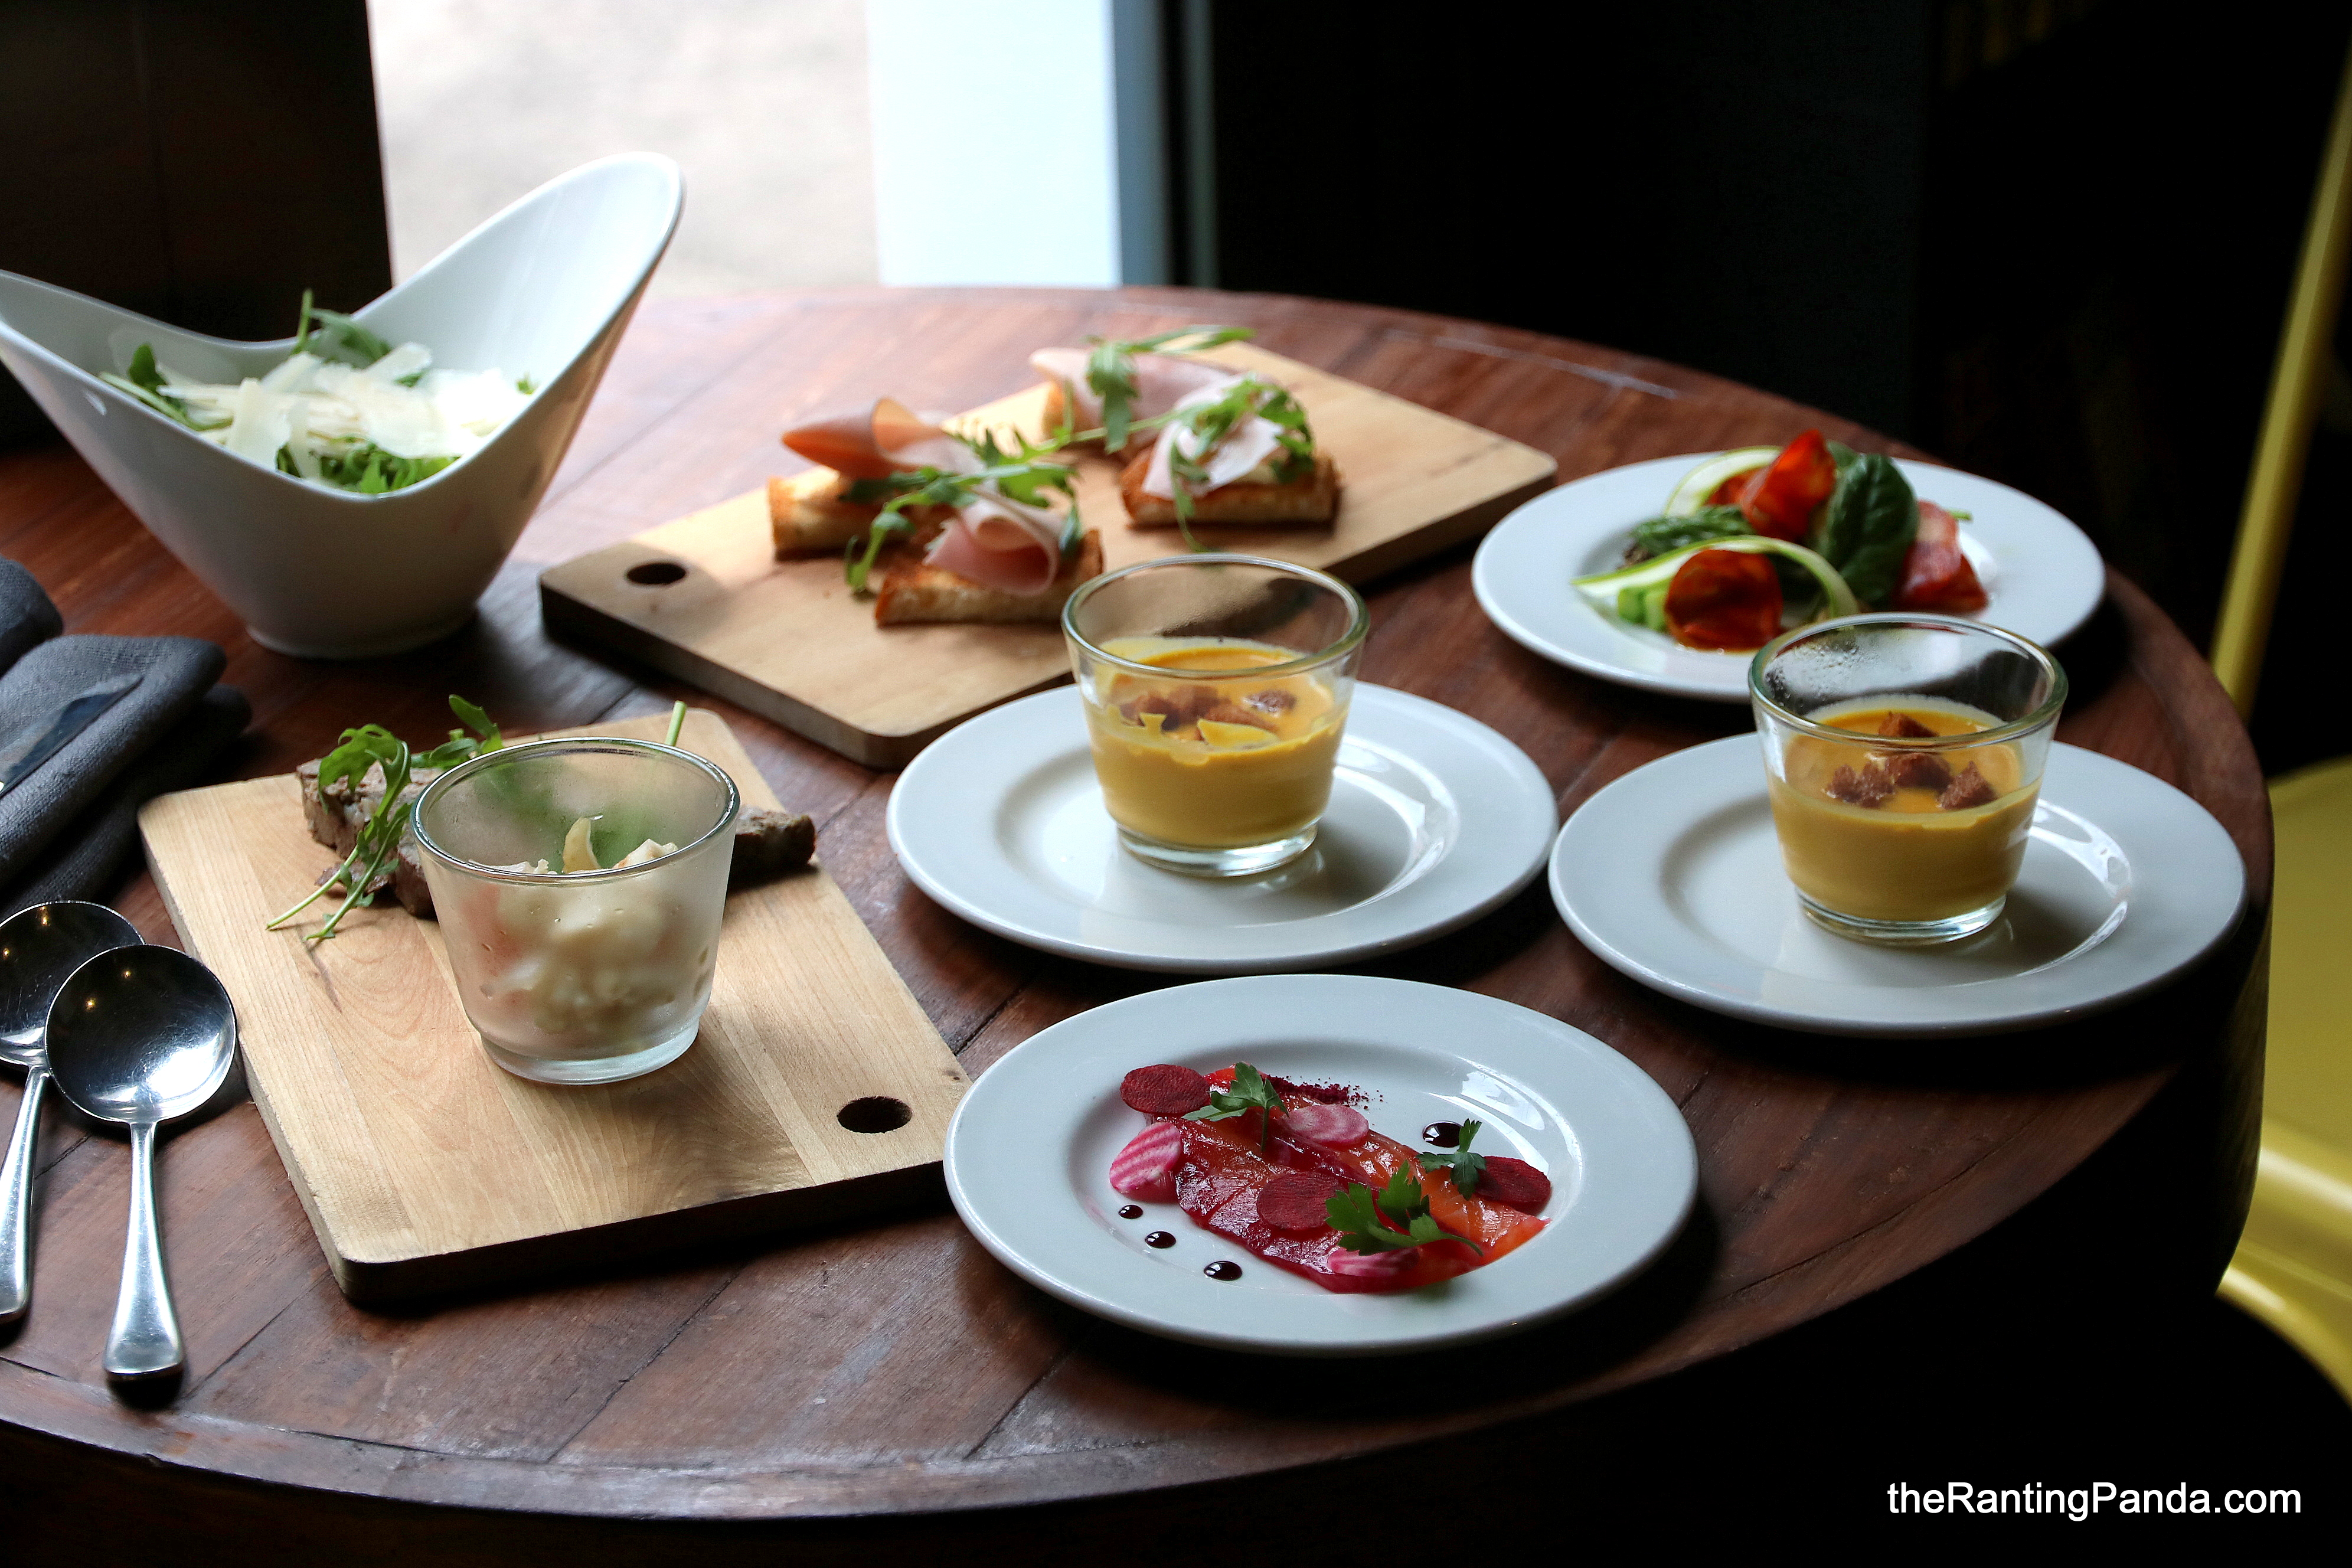 Food Review: Audace Bar & Restaurant at Wanderlust Hotel | Sunday Brunch with a French Twist, and no Eggs